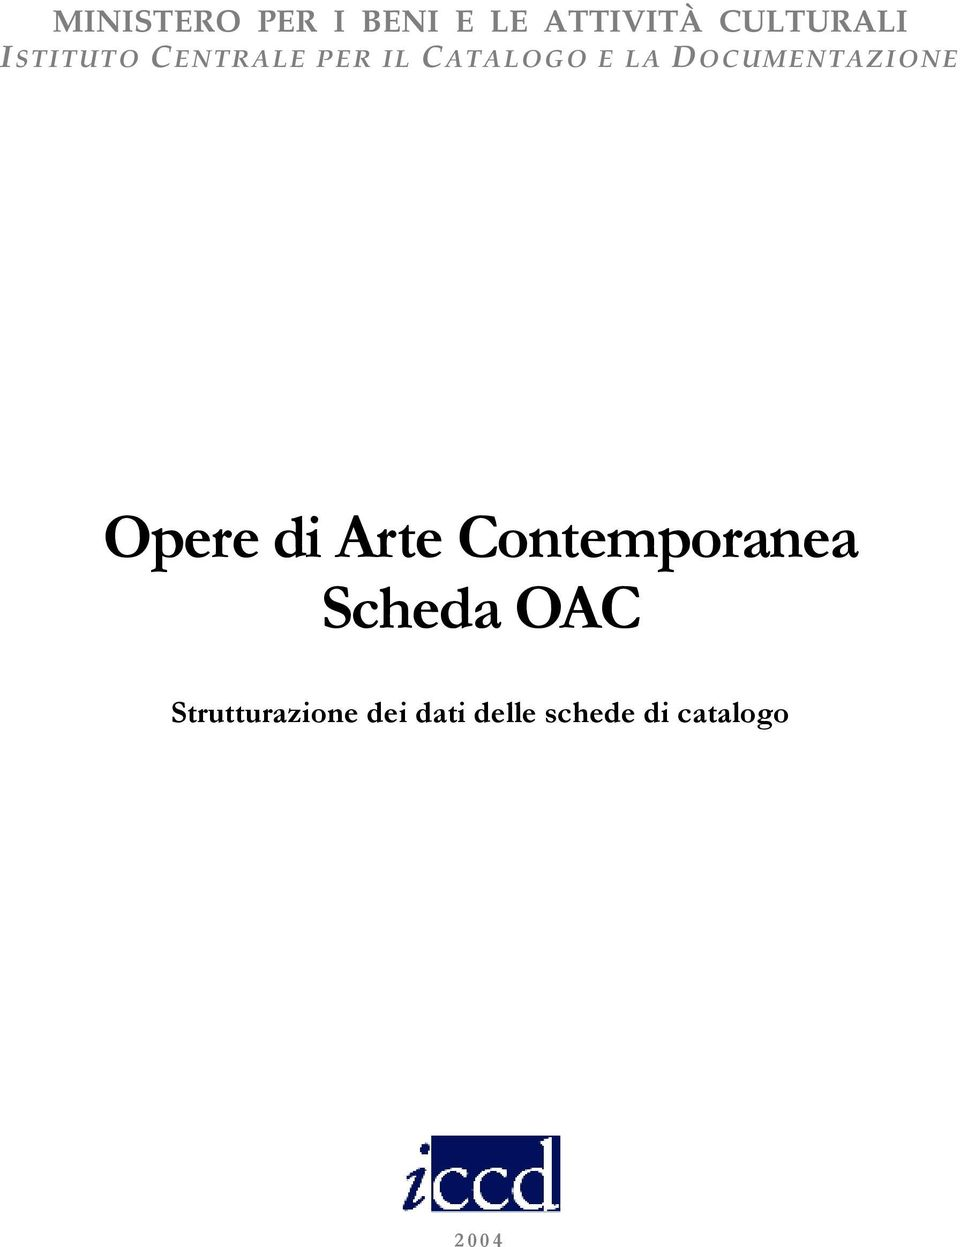 DOCUMENTAZIONE Opere di Arte Contemporanea